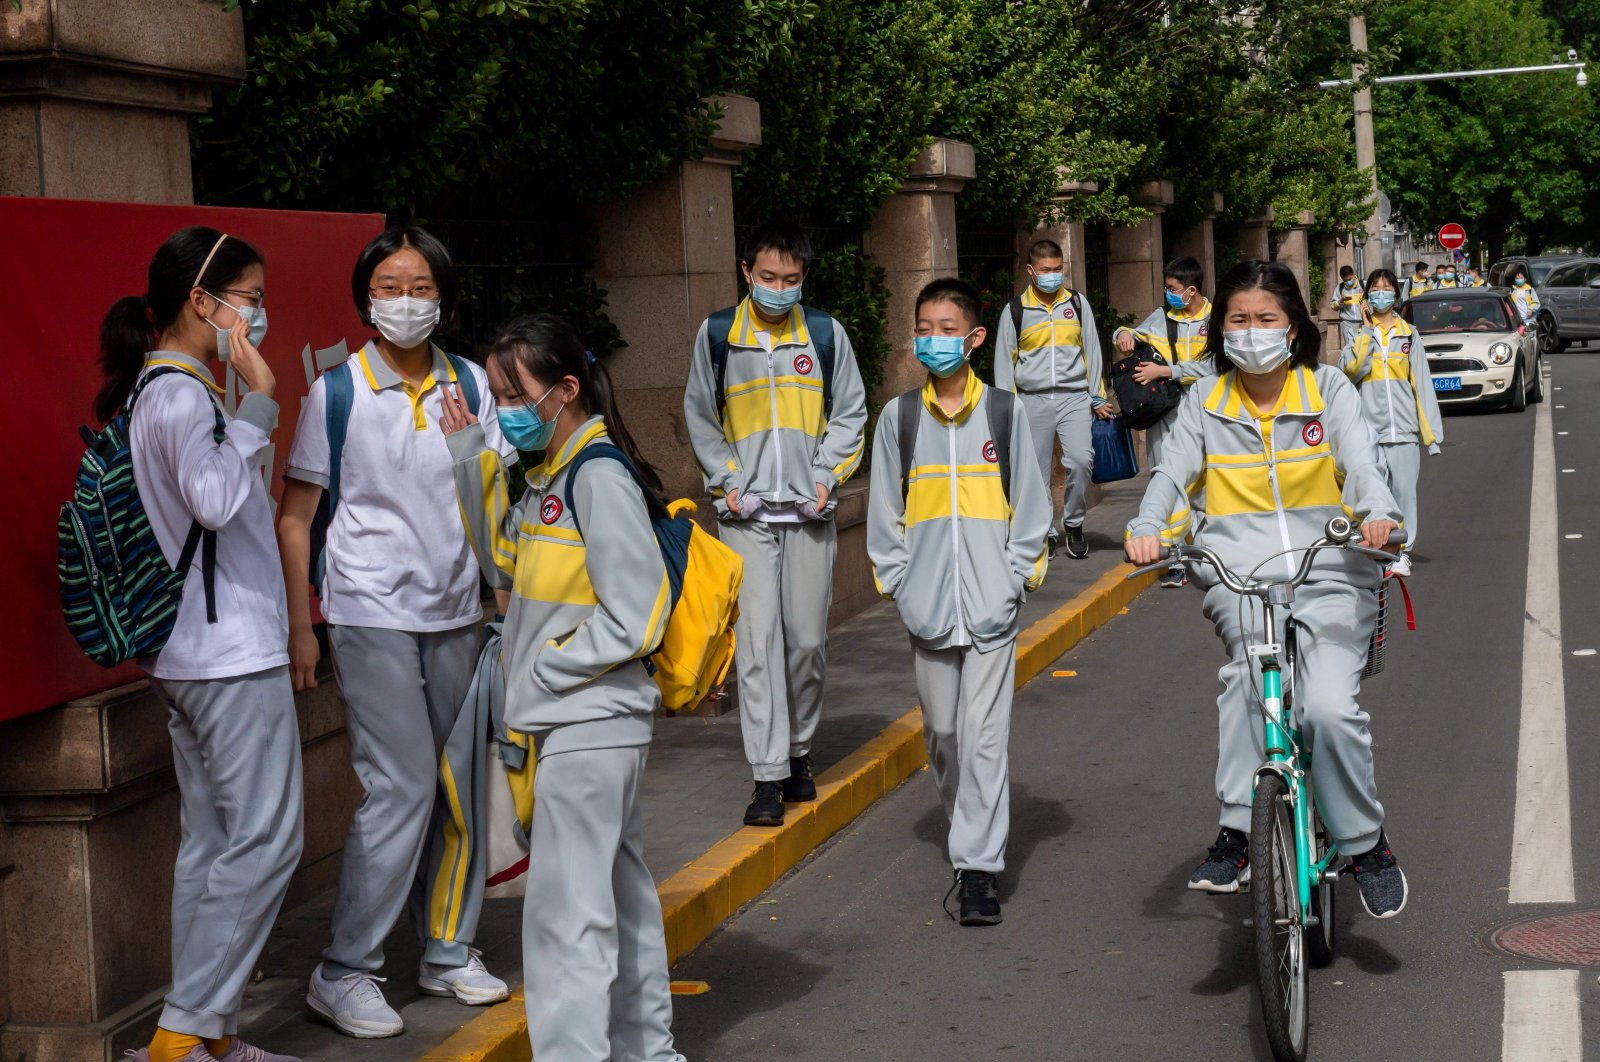 Students wearing face masks amid concerns of the COVID-19 coronavirus leave a middle school in Beijing on May 11, 2020. (AFP Photo)